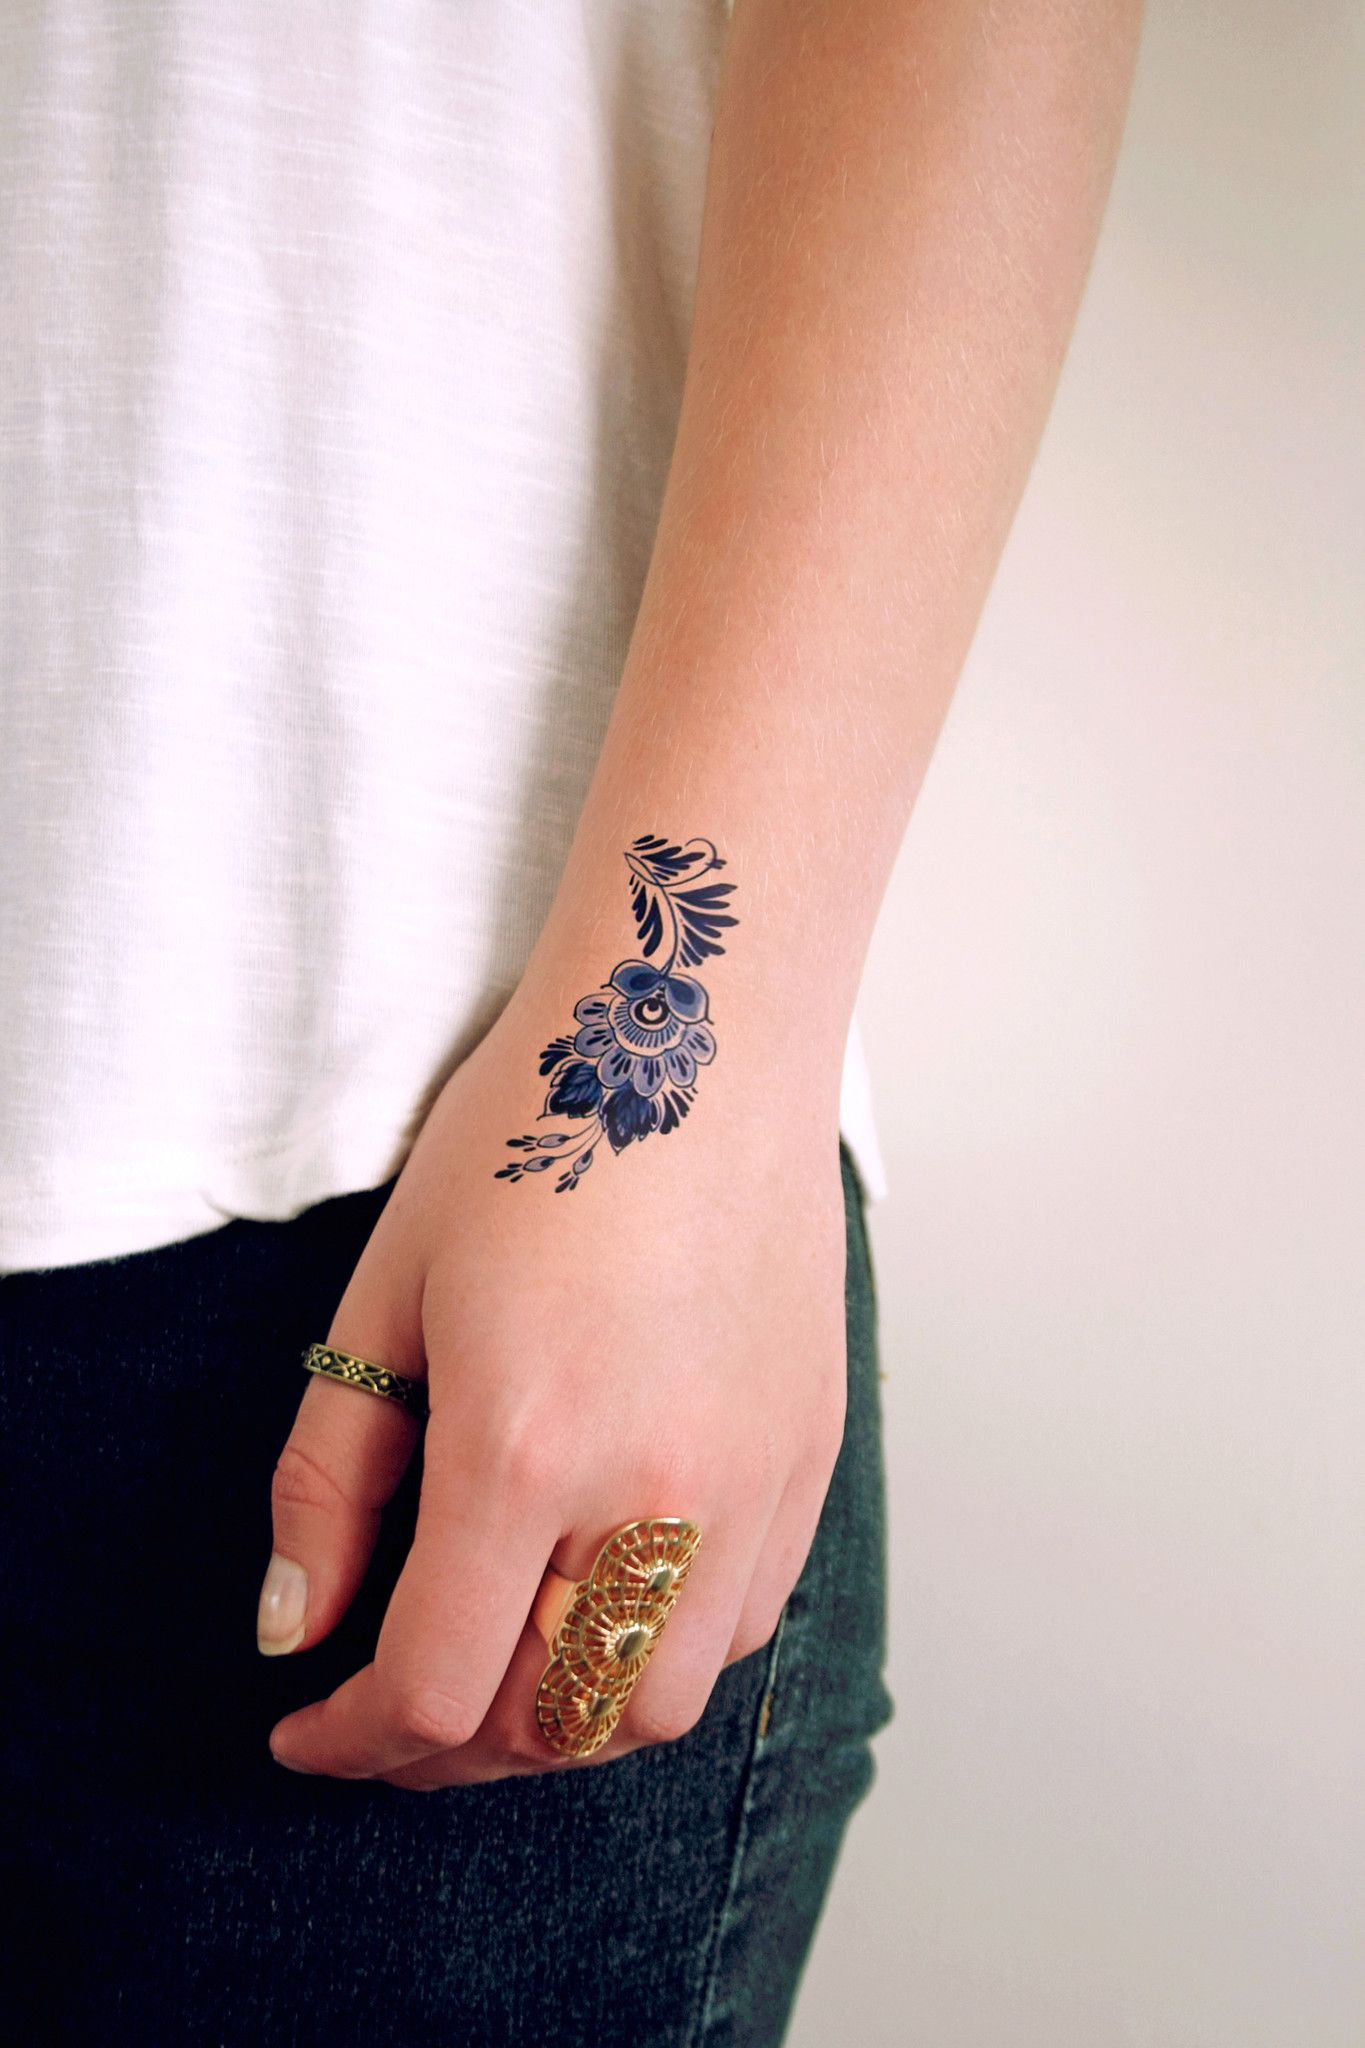 Small Flower Tattoos: Small Delft Blue Floral Tattoo